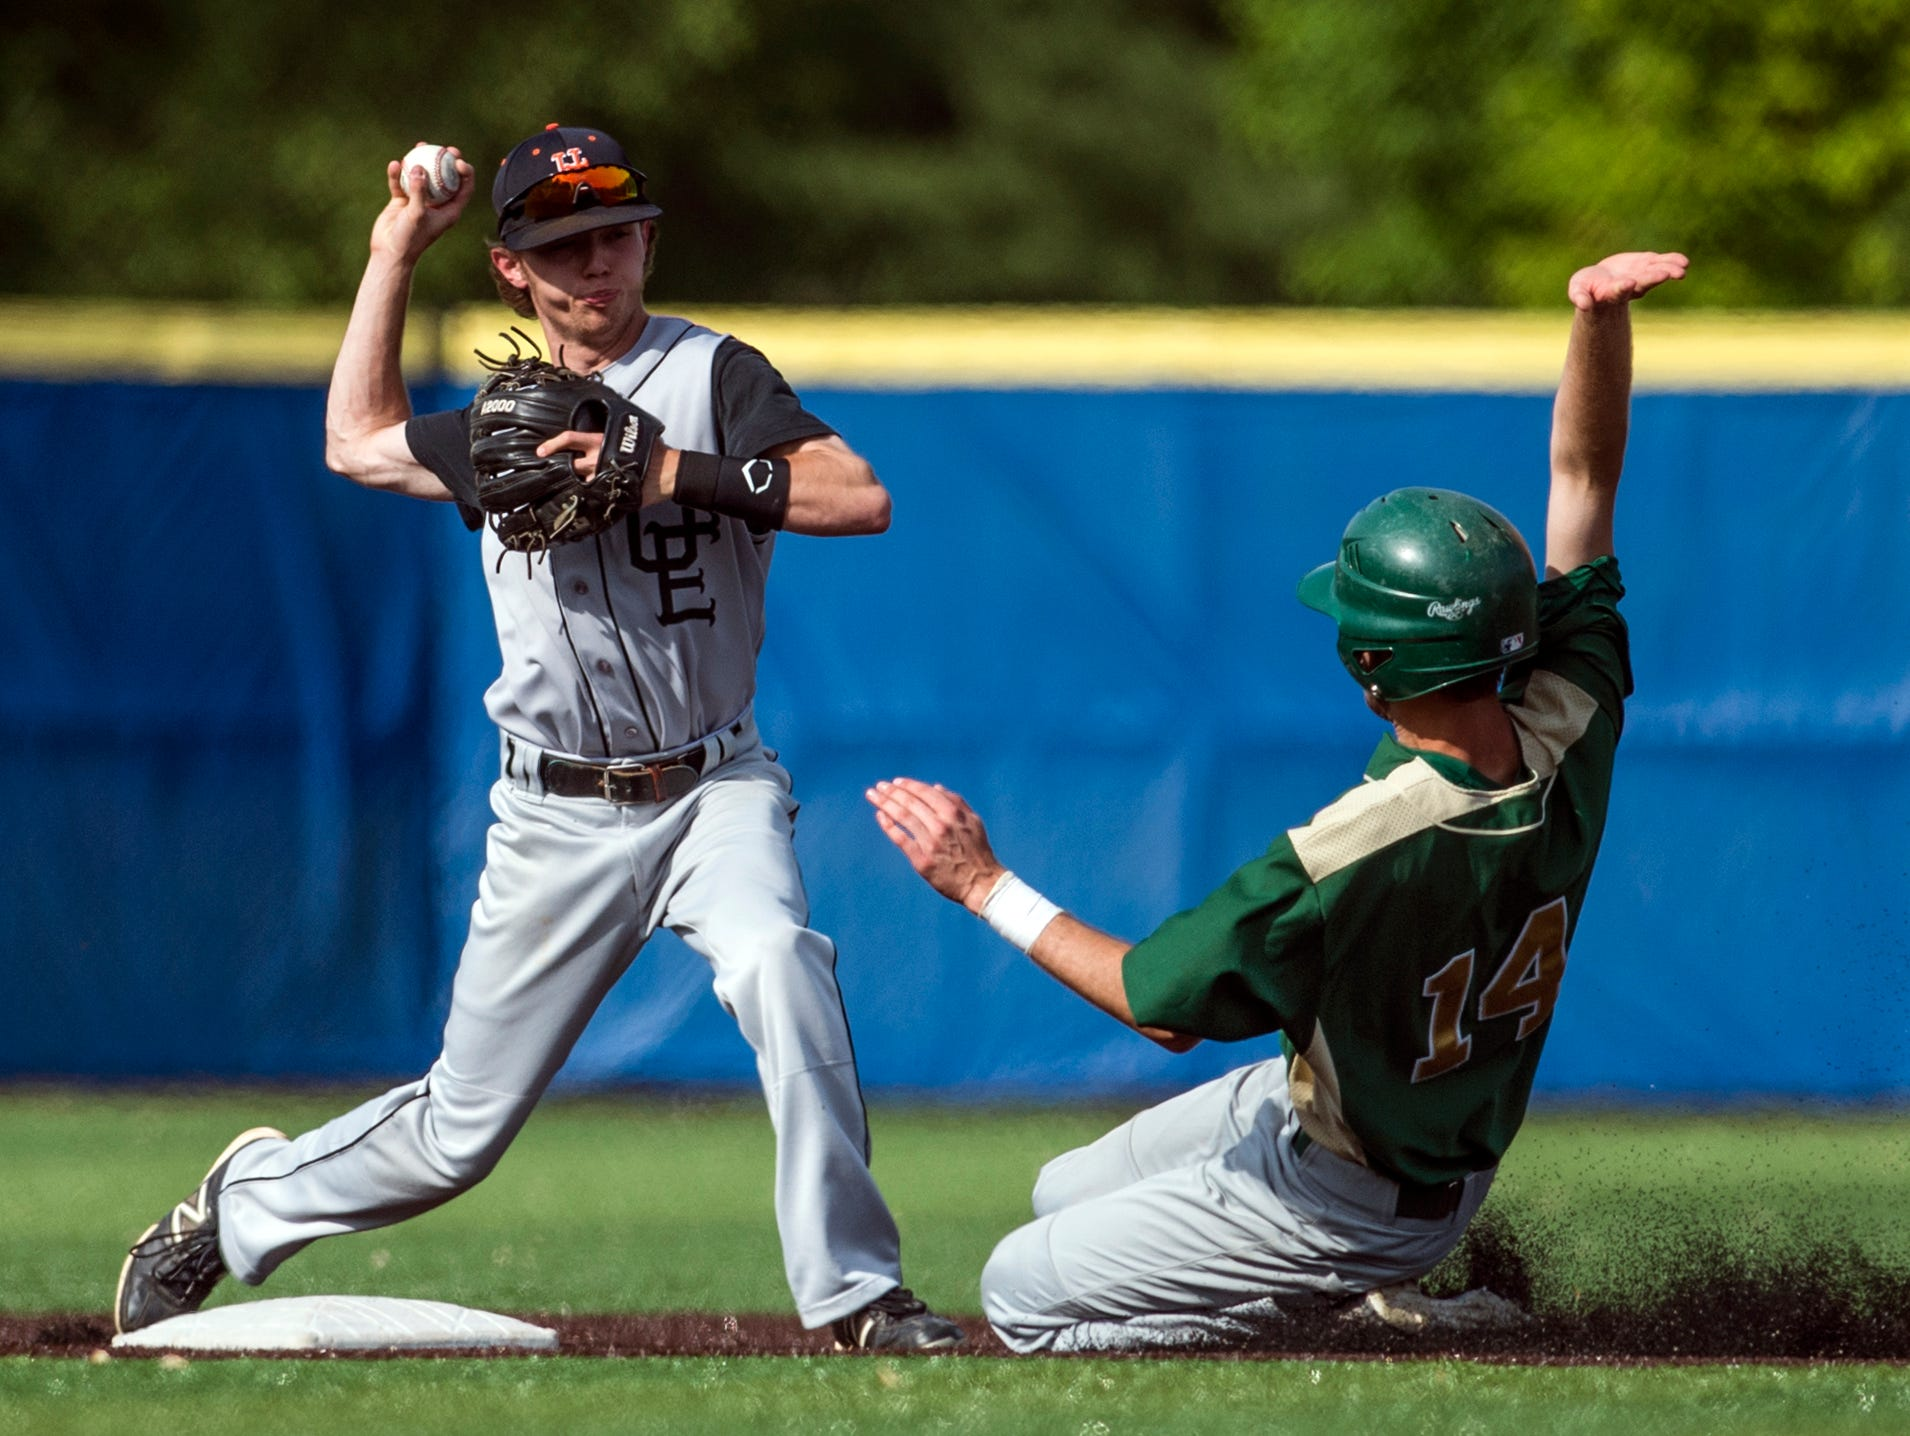 Union-Endicott's second baseman Mark Ryan turns a double play in the bottom of the second inning of the Section 4 Class A title game against Vestal on Friday at Maine-Endwell High School. Union-Endicott won 4-1.